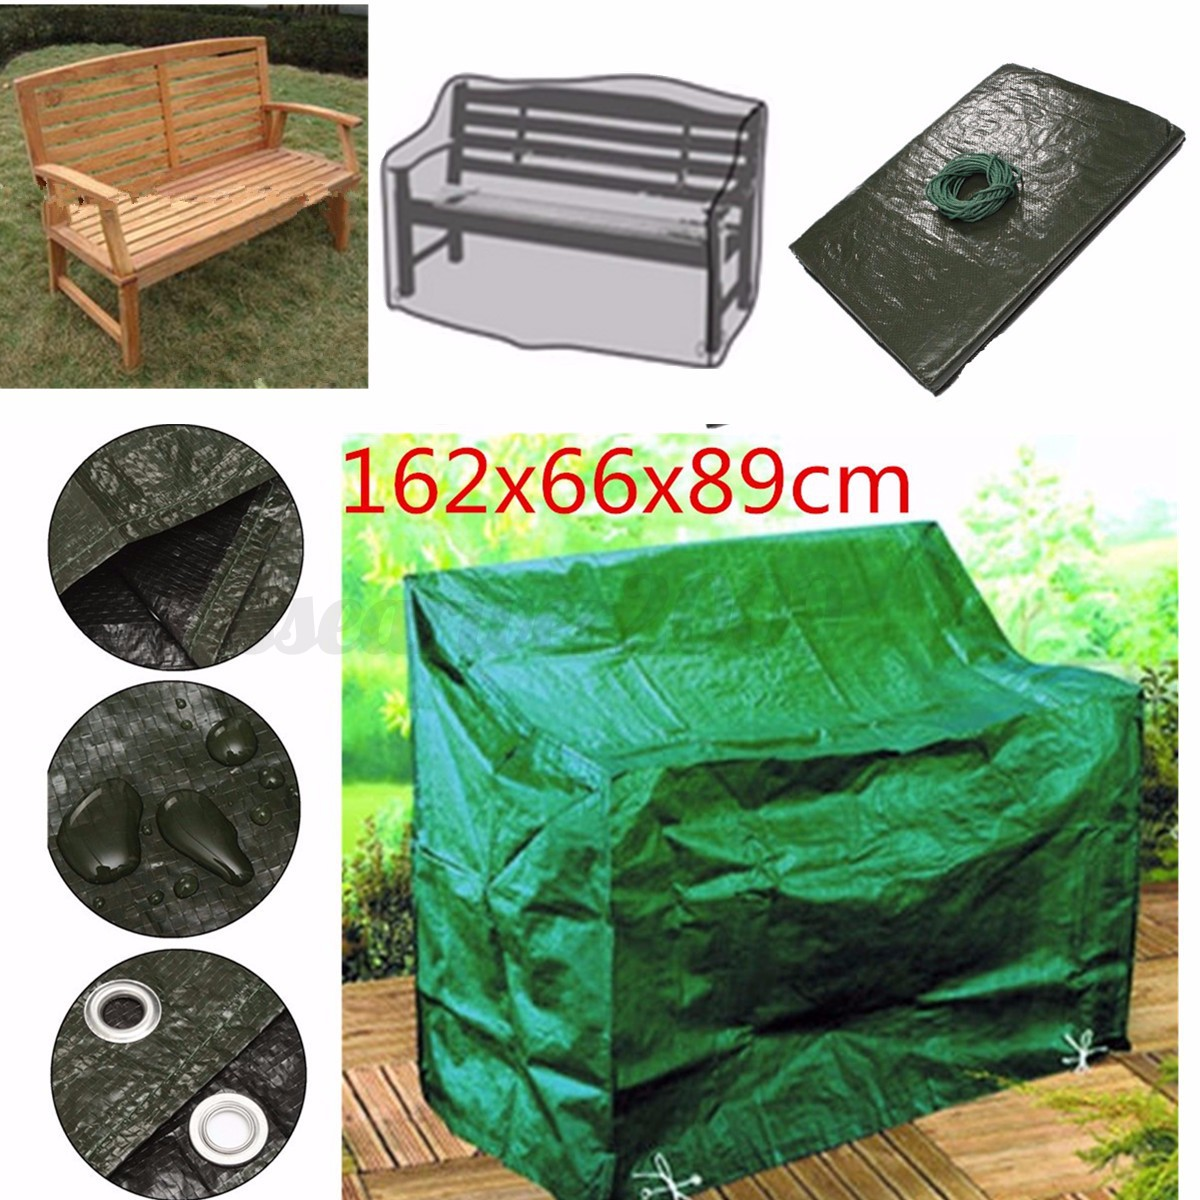 Waterproof Chair Covers Waterproof Furniture Cover For Garden Outdoor Patio Bench